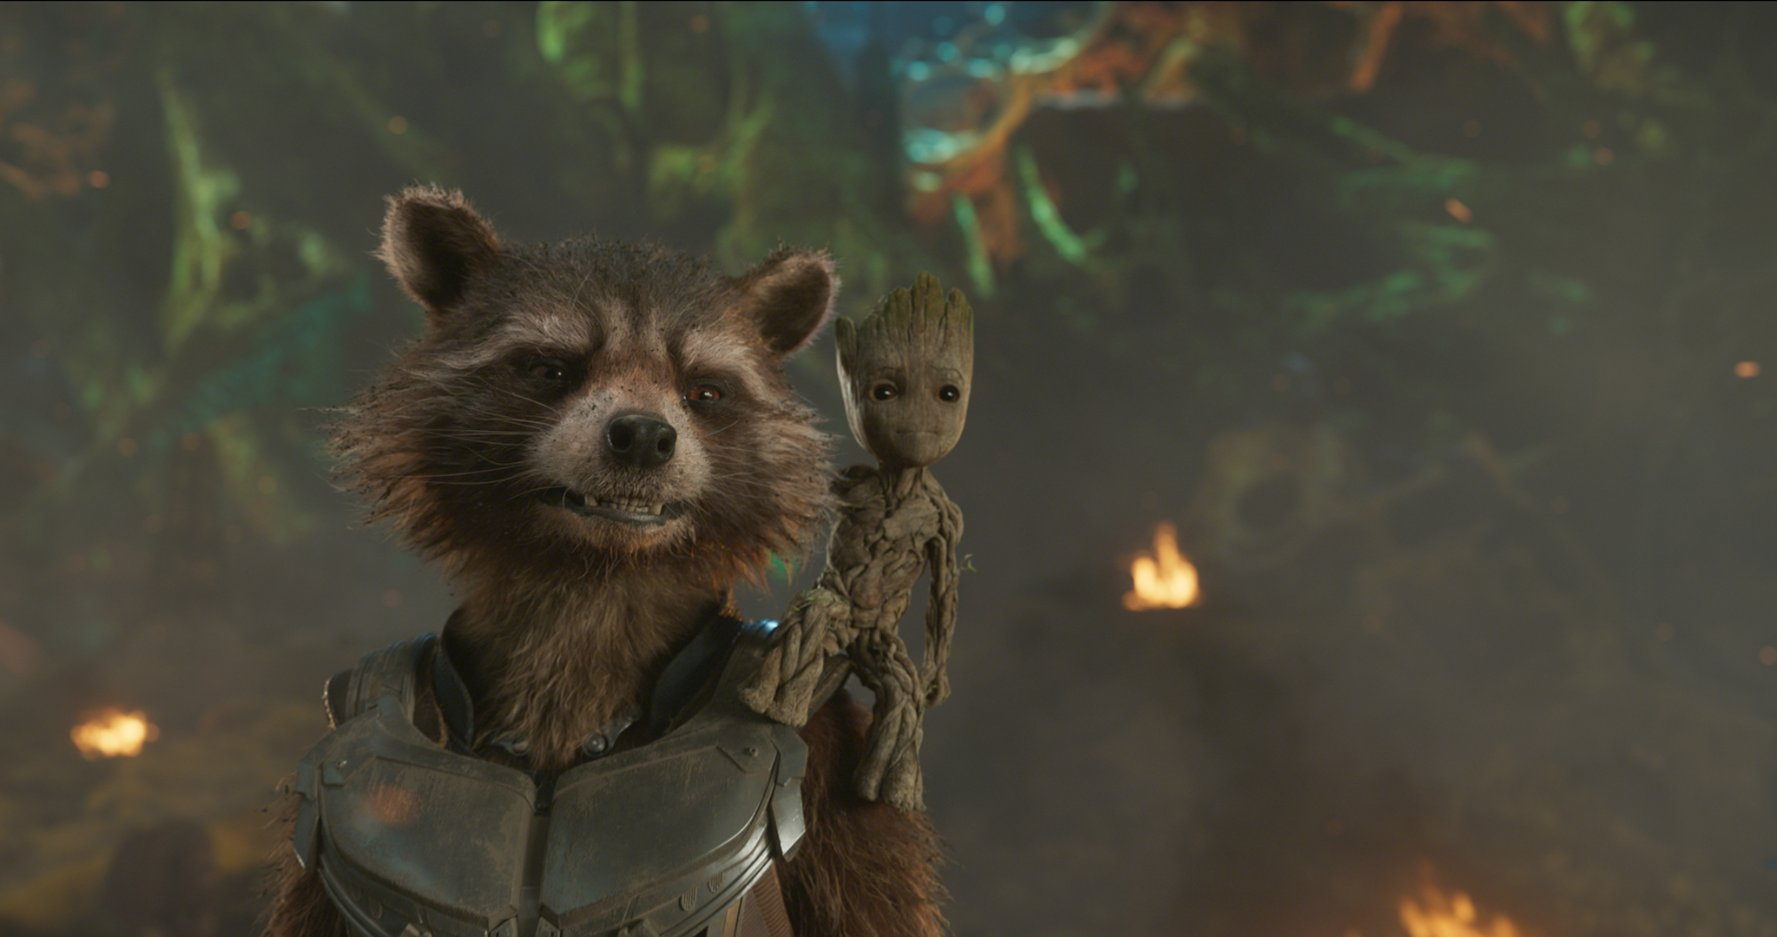 (7) film-chuvari-na-galaksijata-2-guardians-of-the-galaxy-vol-2-www.kafepauza.mk